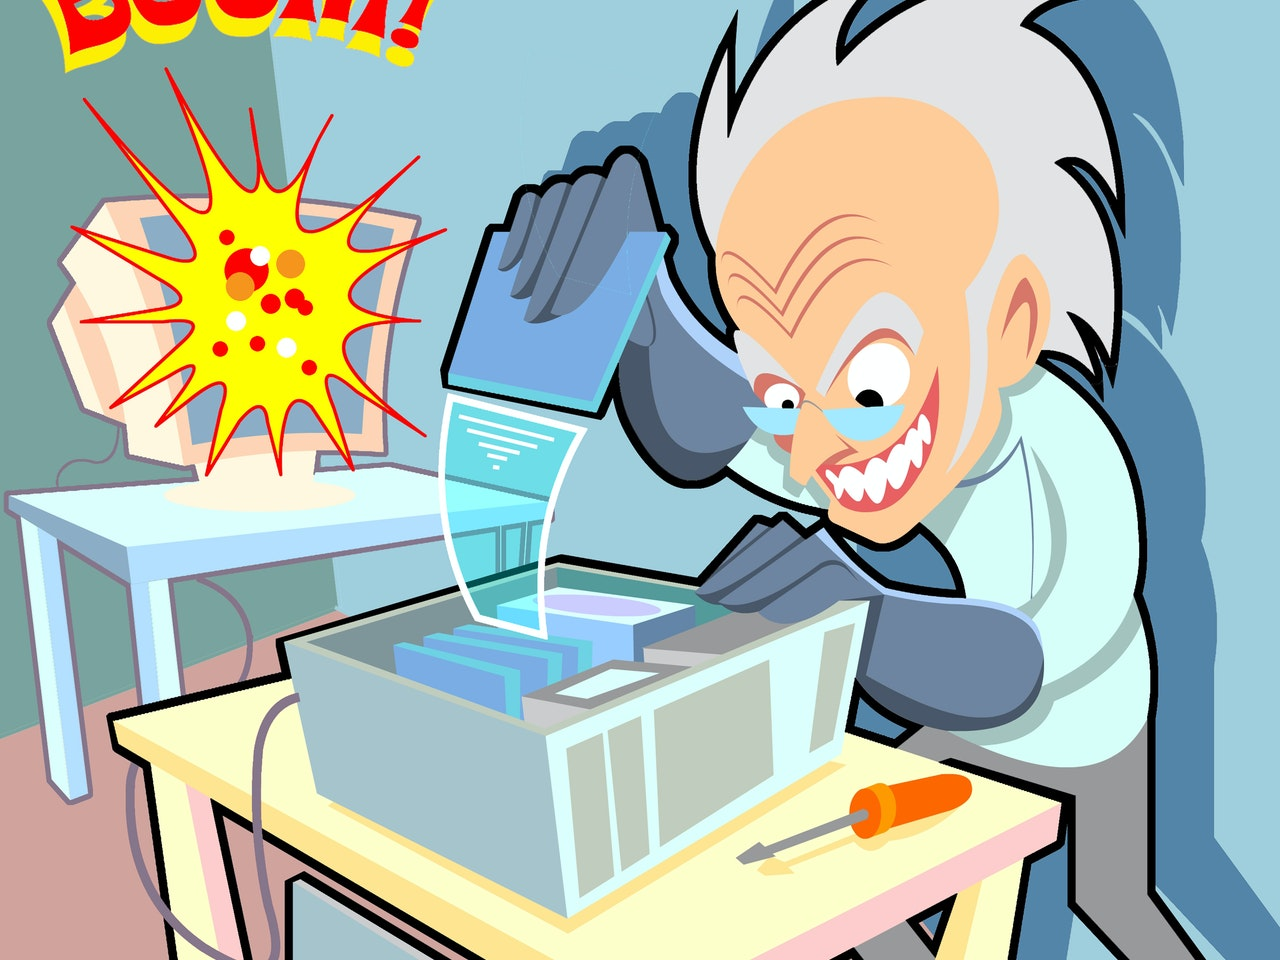 technician engineer mad scientist computer laboratory technology accident explosion funny happy humorous comical colourful graphic cartoon anime